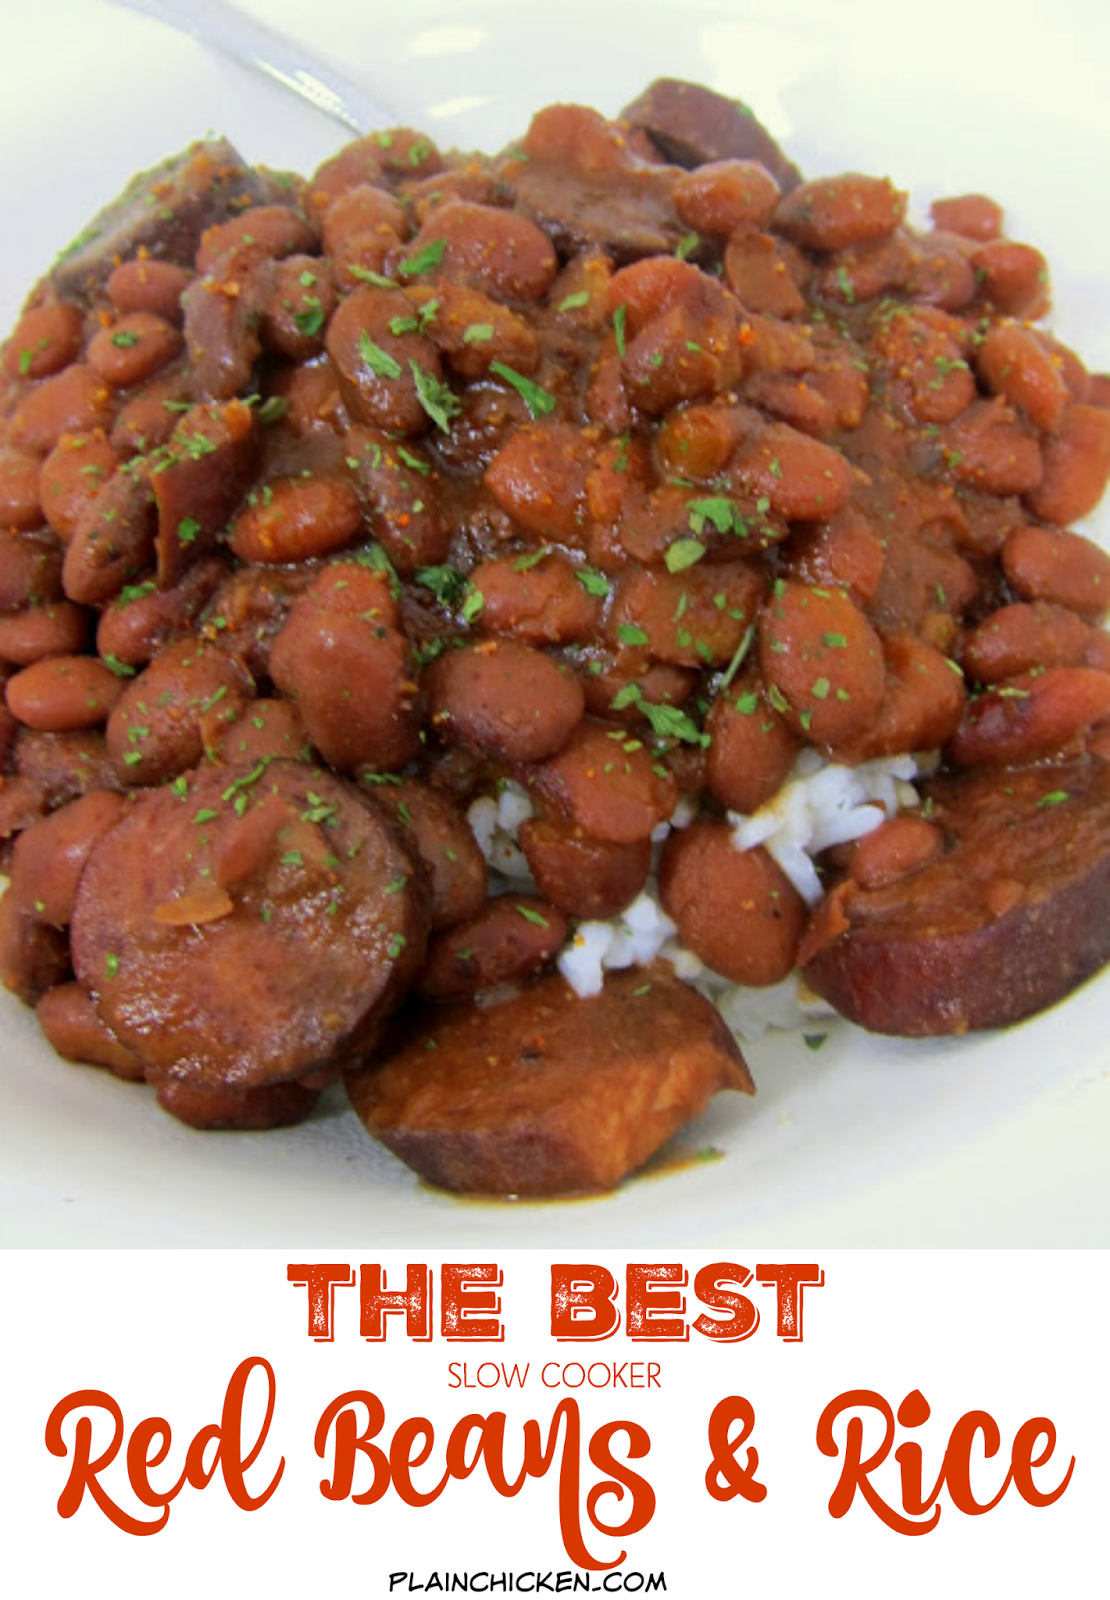 How to make red beans and rice in a cooker